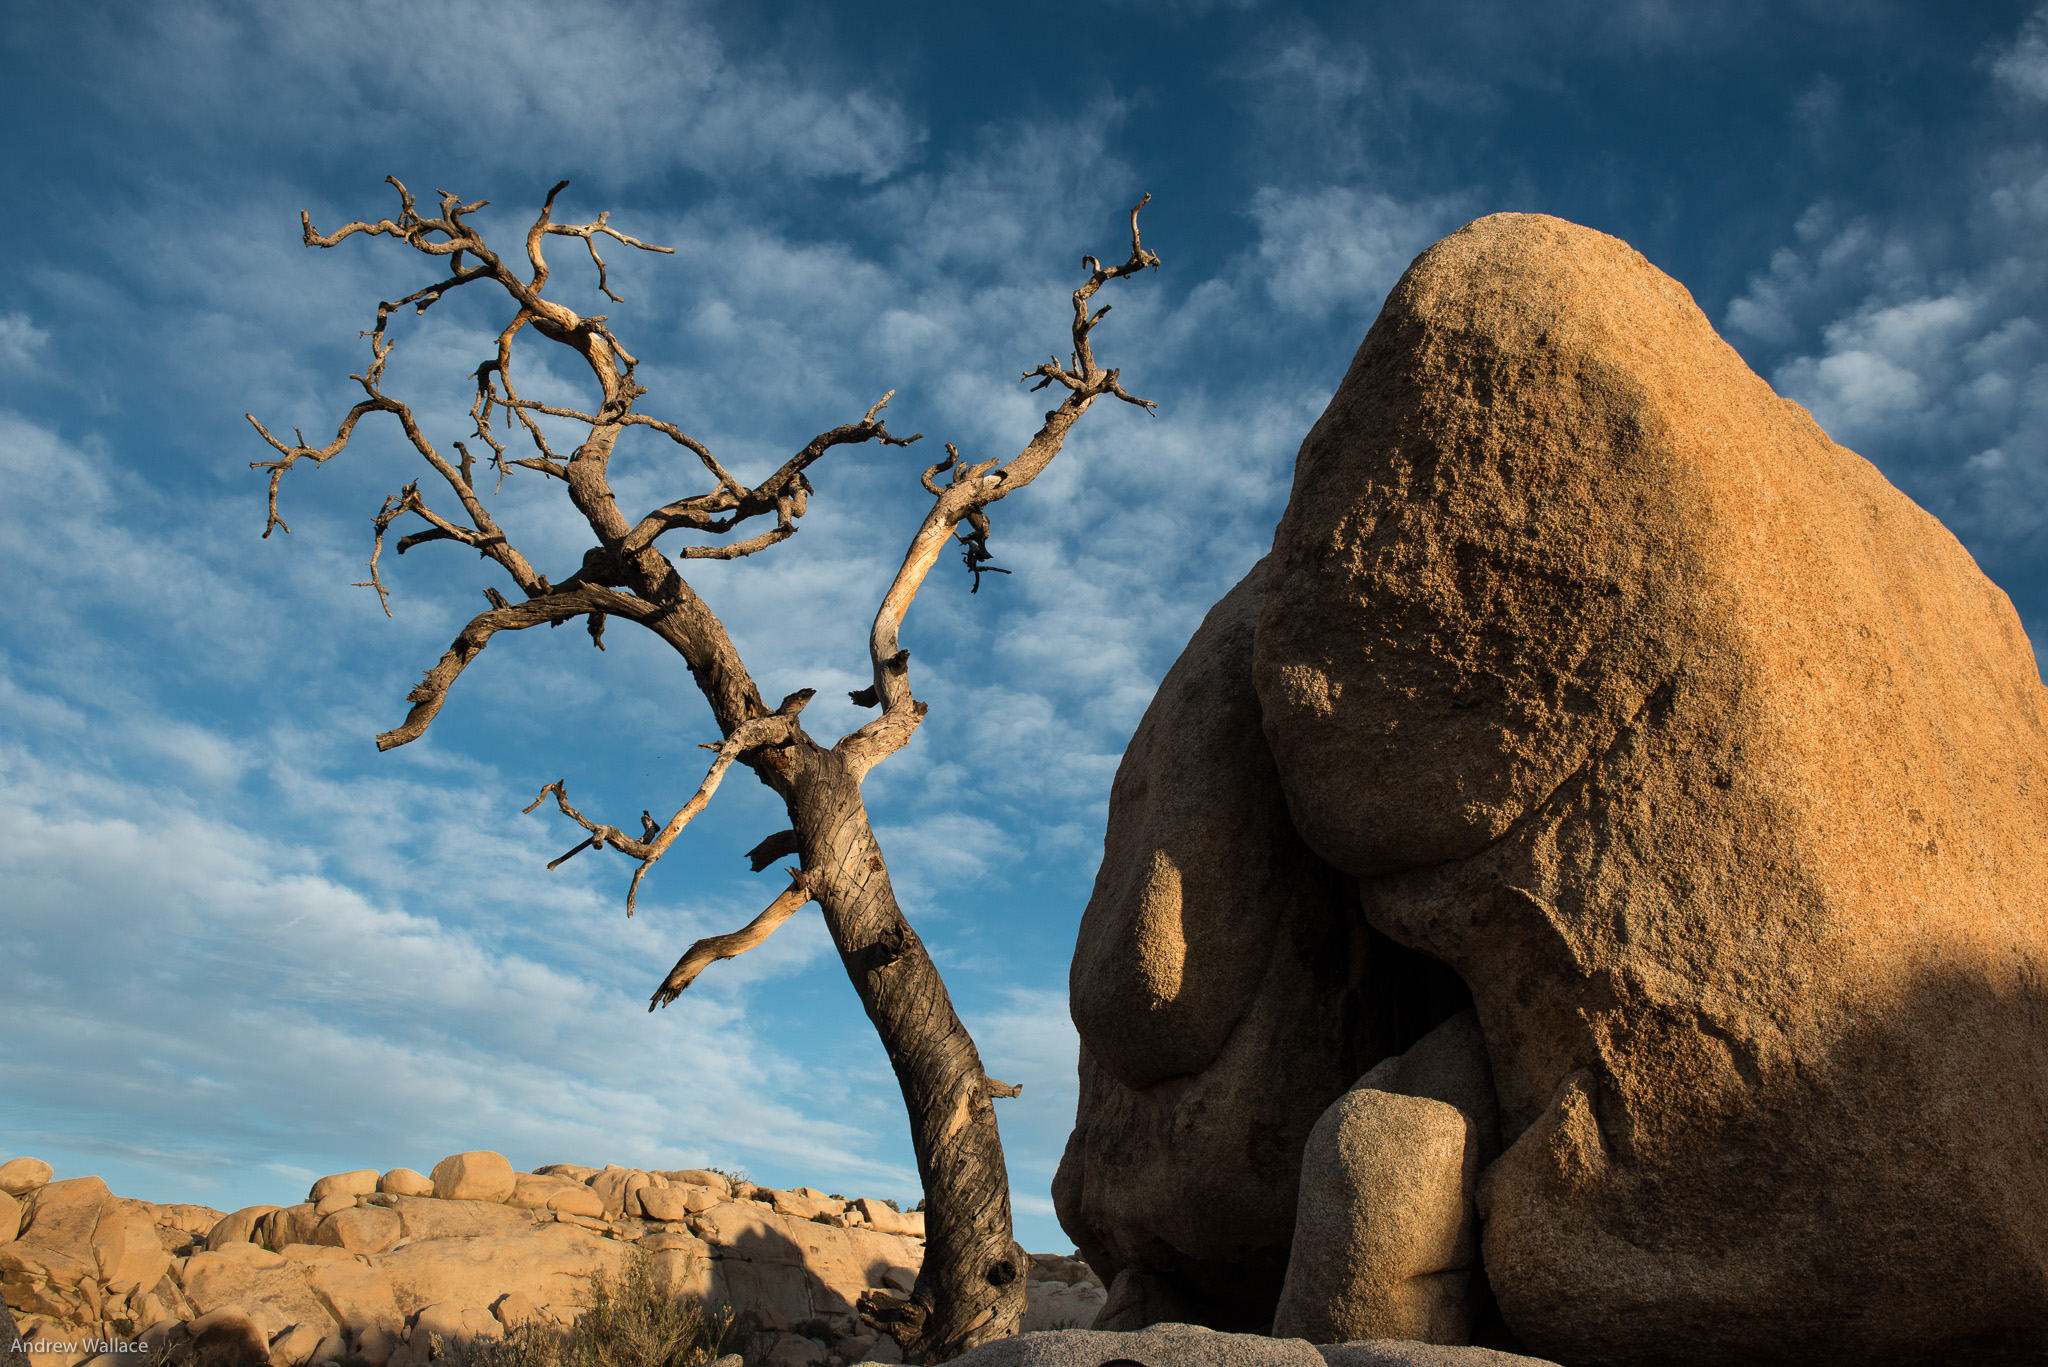 Landscape    Rock and Tree - Joshua Tree National Park   I have been developing a passion for landscape photography, during all hours of the day. Night photography and light painting in Joshua Tree National Park was particularly engrossing.